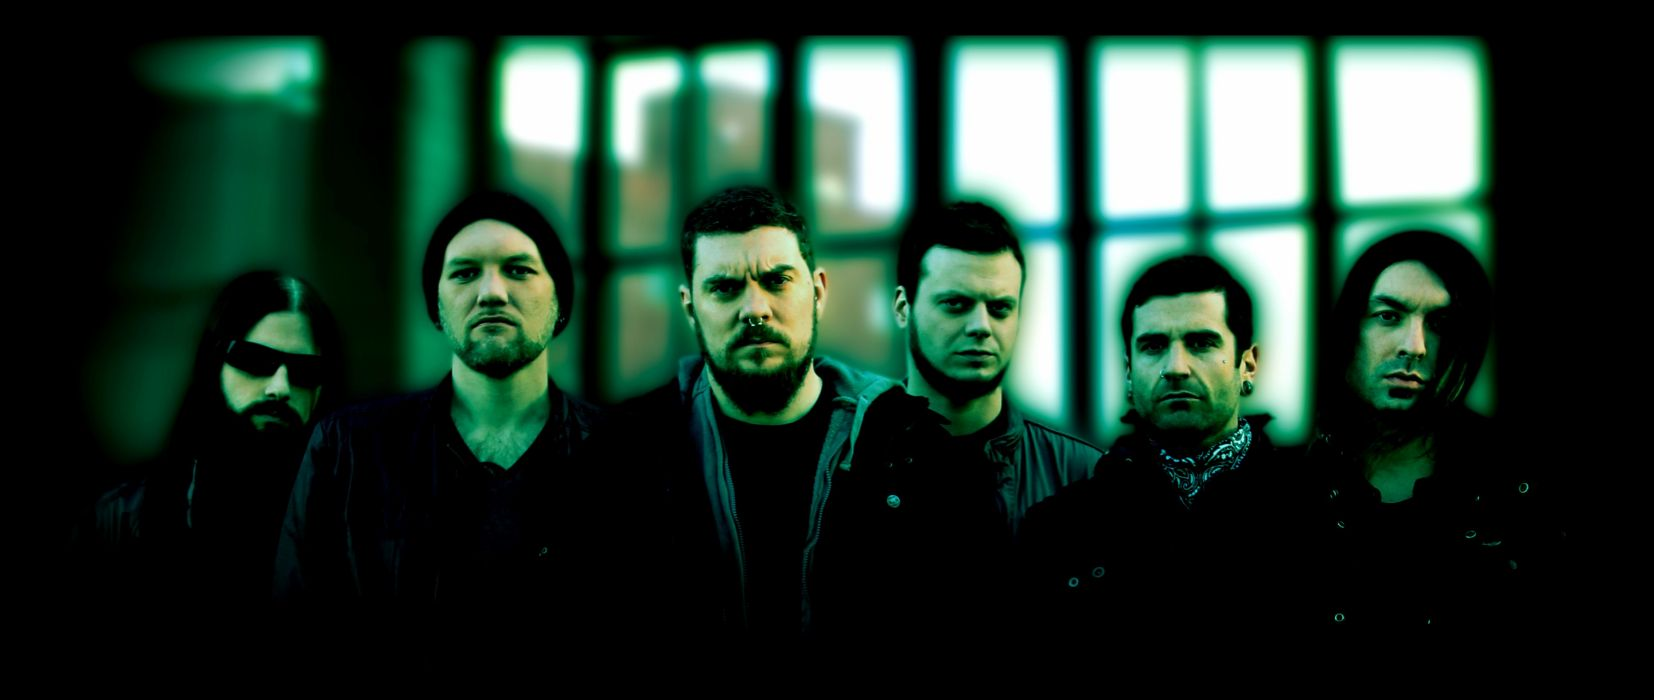 CHIMAIRA groove metalcore nu-metal metal heavy    gd wallpaper